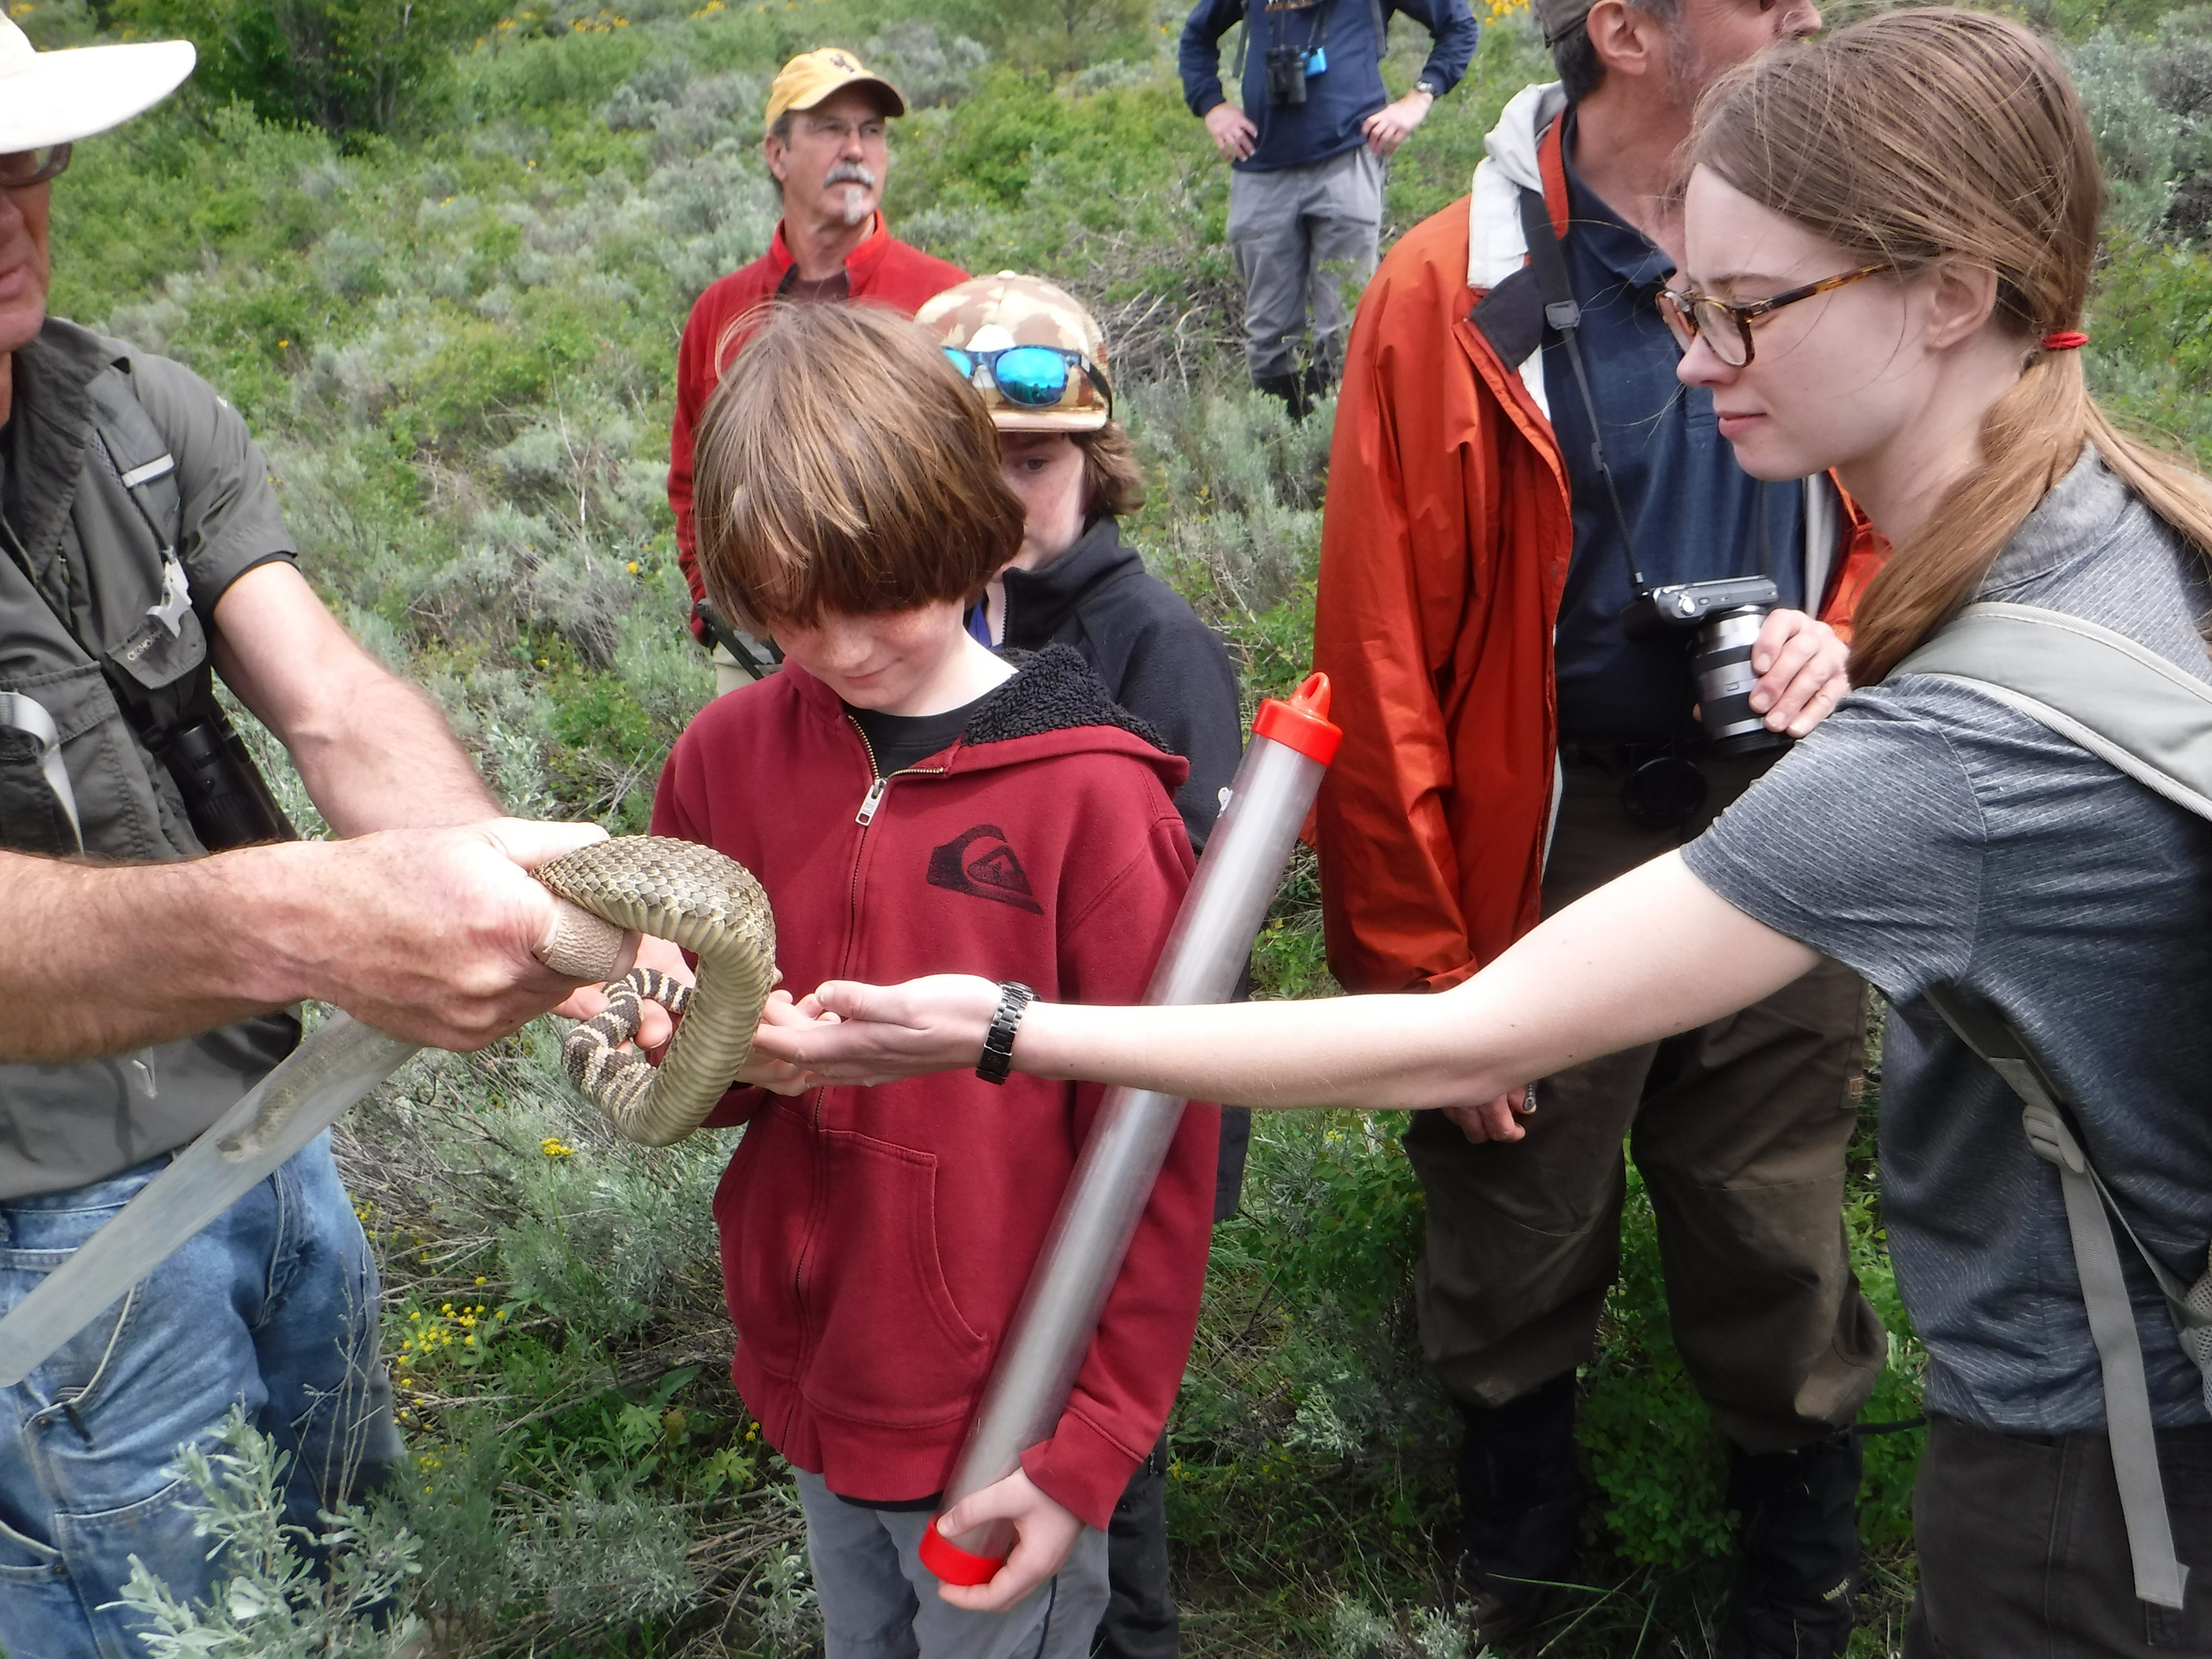 Participants petting a rattle snake.